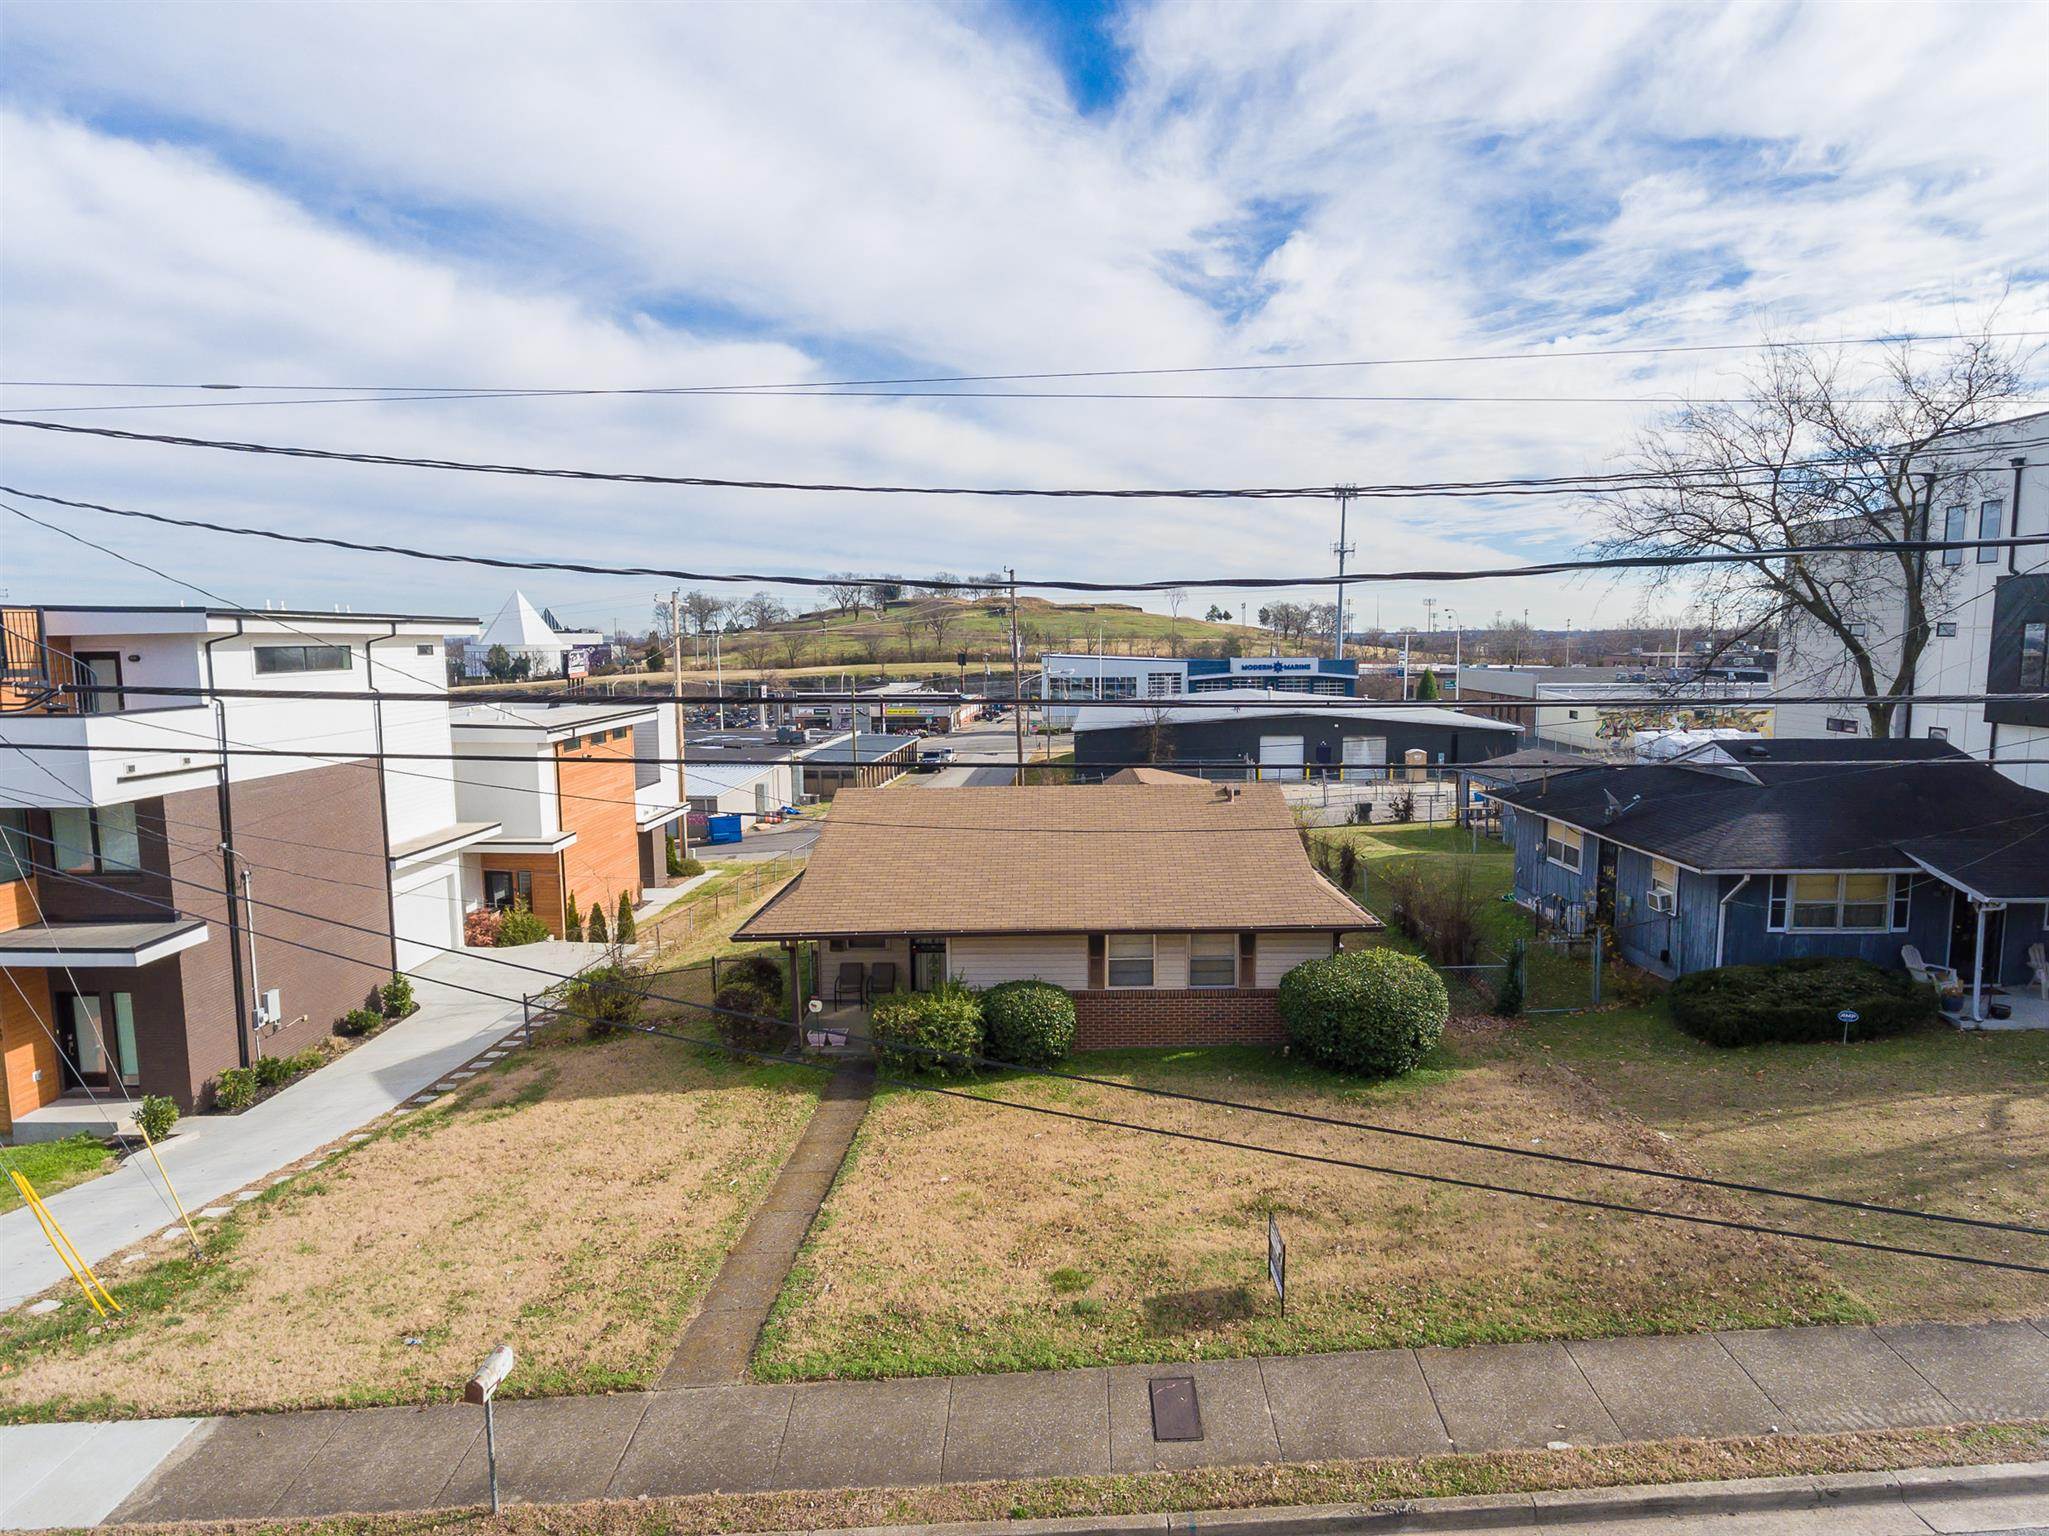 1000 9Th Ave, S, Nashville - Midtown in Davidson County County, TN 37203 Home for Sale